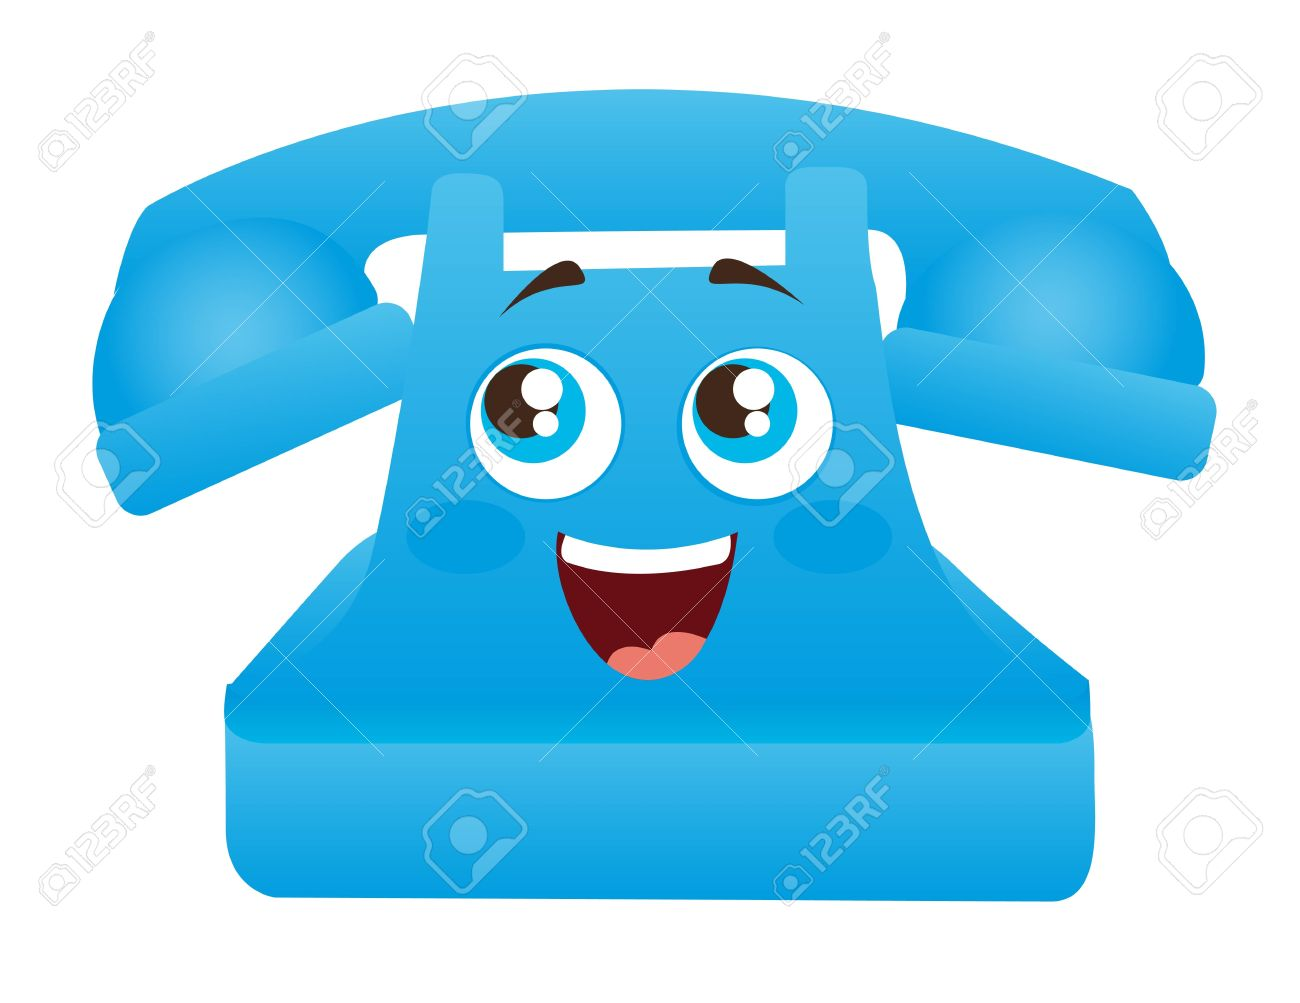 blue telephone cartoon with eyes and mouth illustration Stock Vector - 11886129